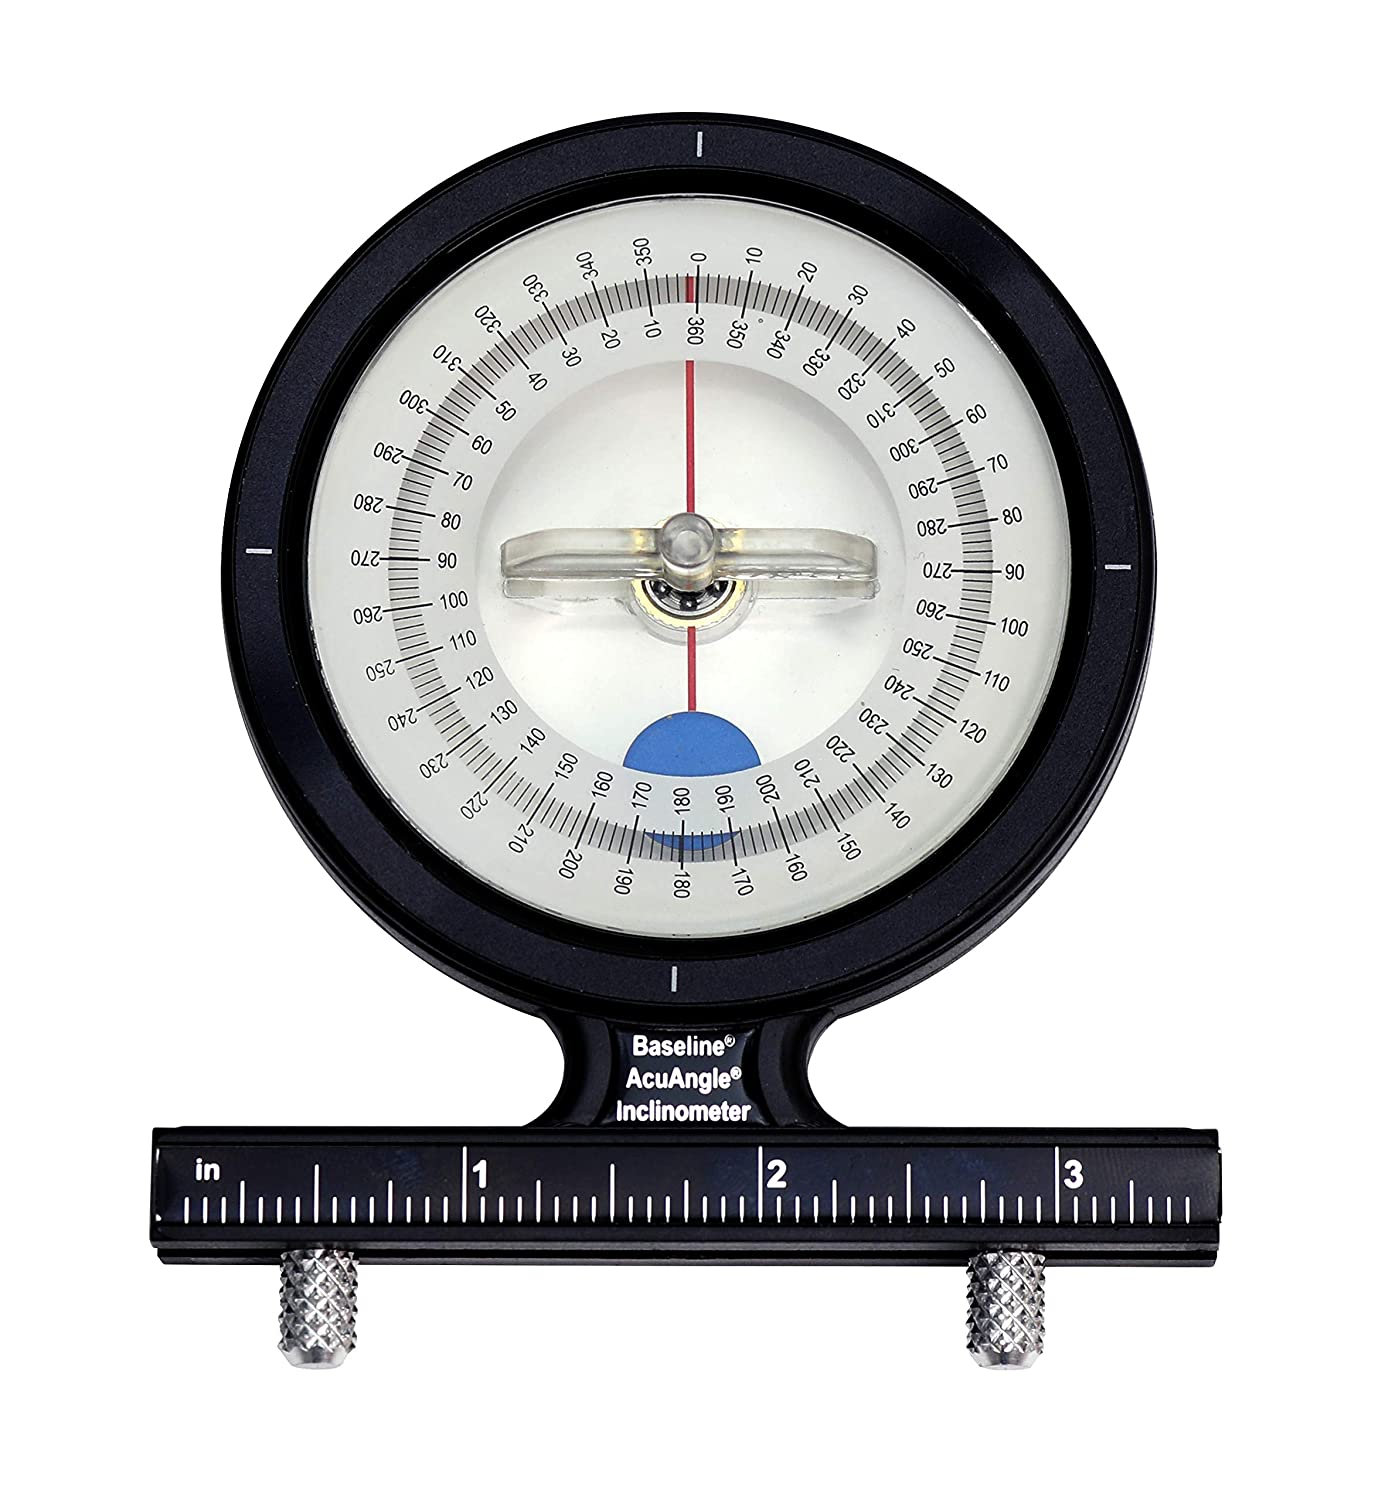 Baseline AcuAngle Inclinometer with Adjustable-Feet for Precision Measurement, Testing and Evaluation of Range of Motion of Neck, Hip, Spine, Elbow, Knee, Shoulder, Ankle, Wrist and MCP Joint